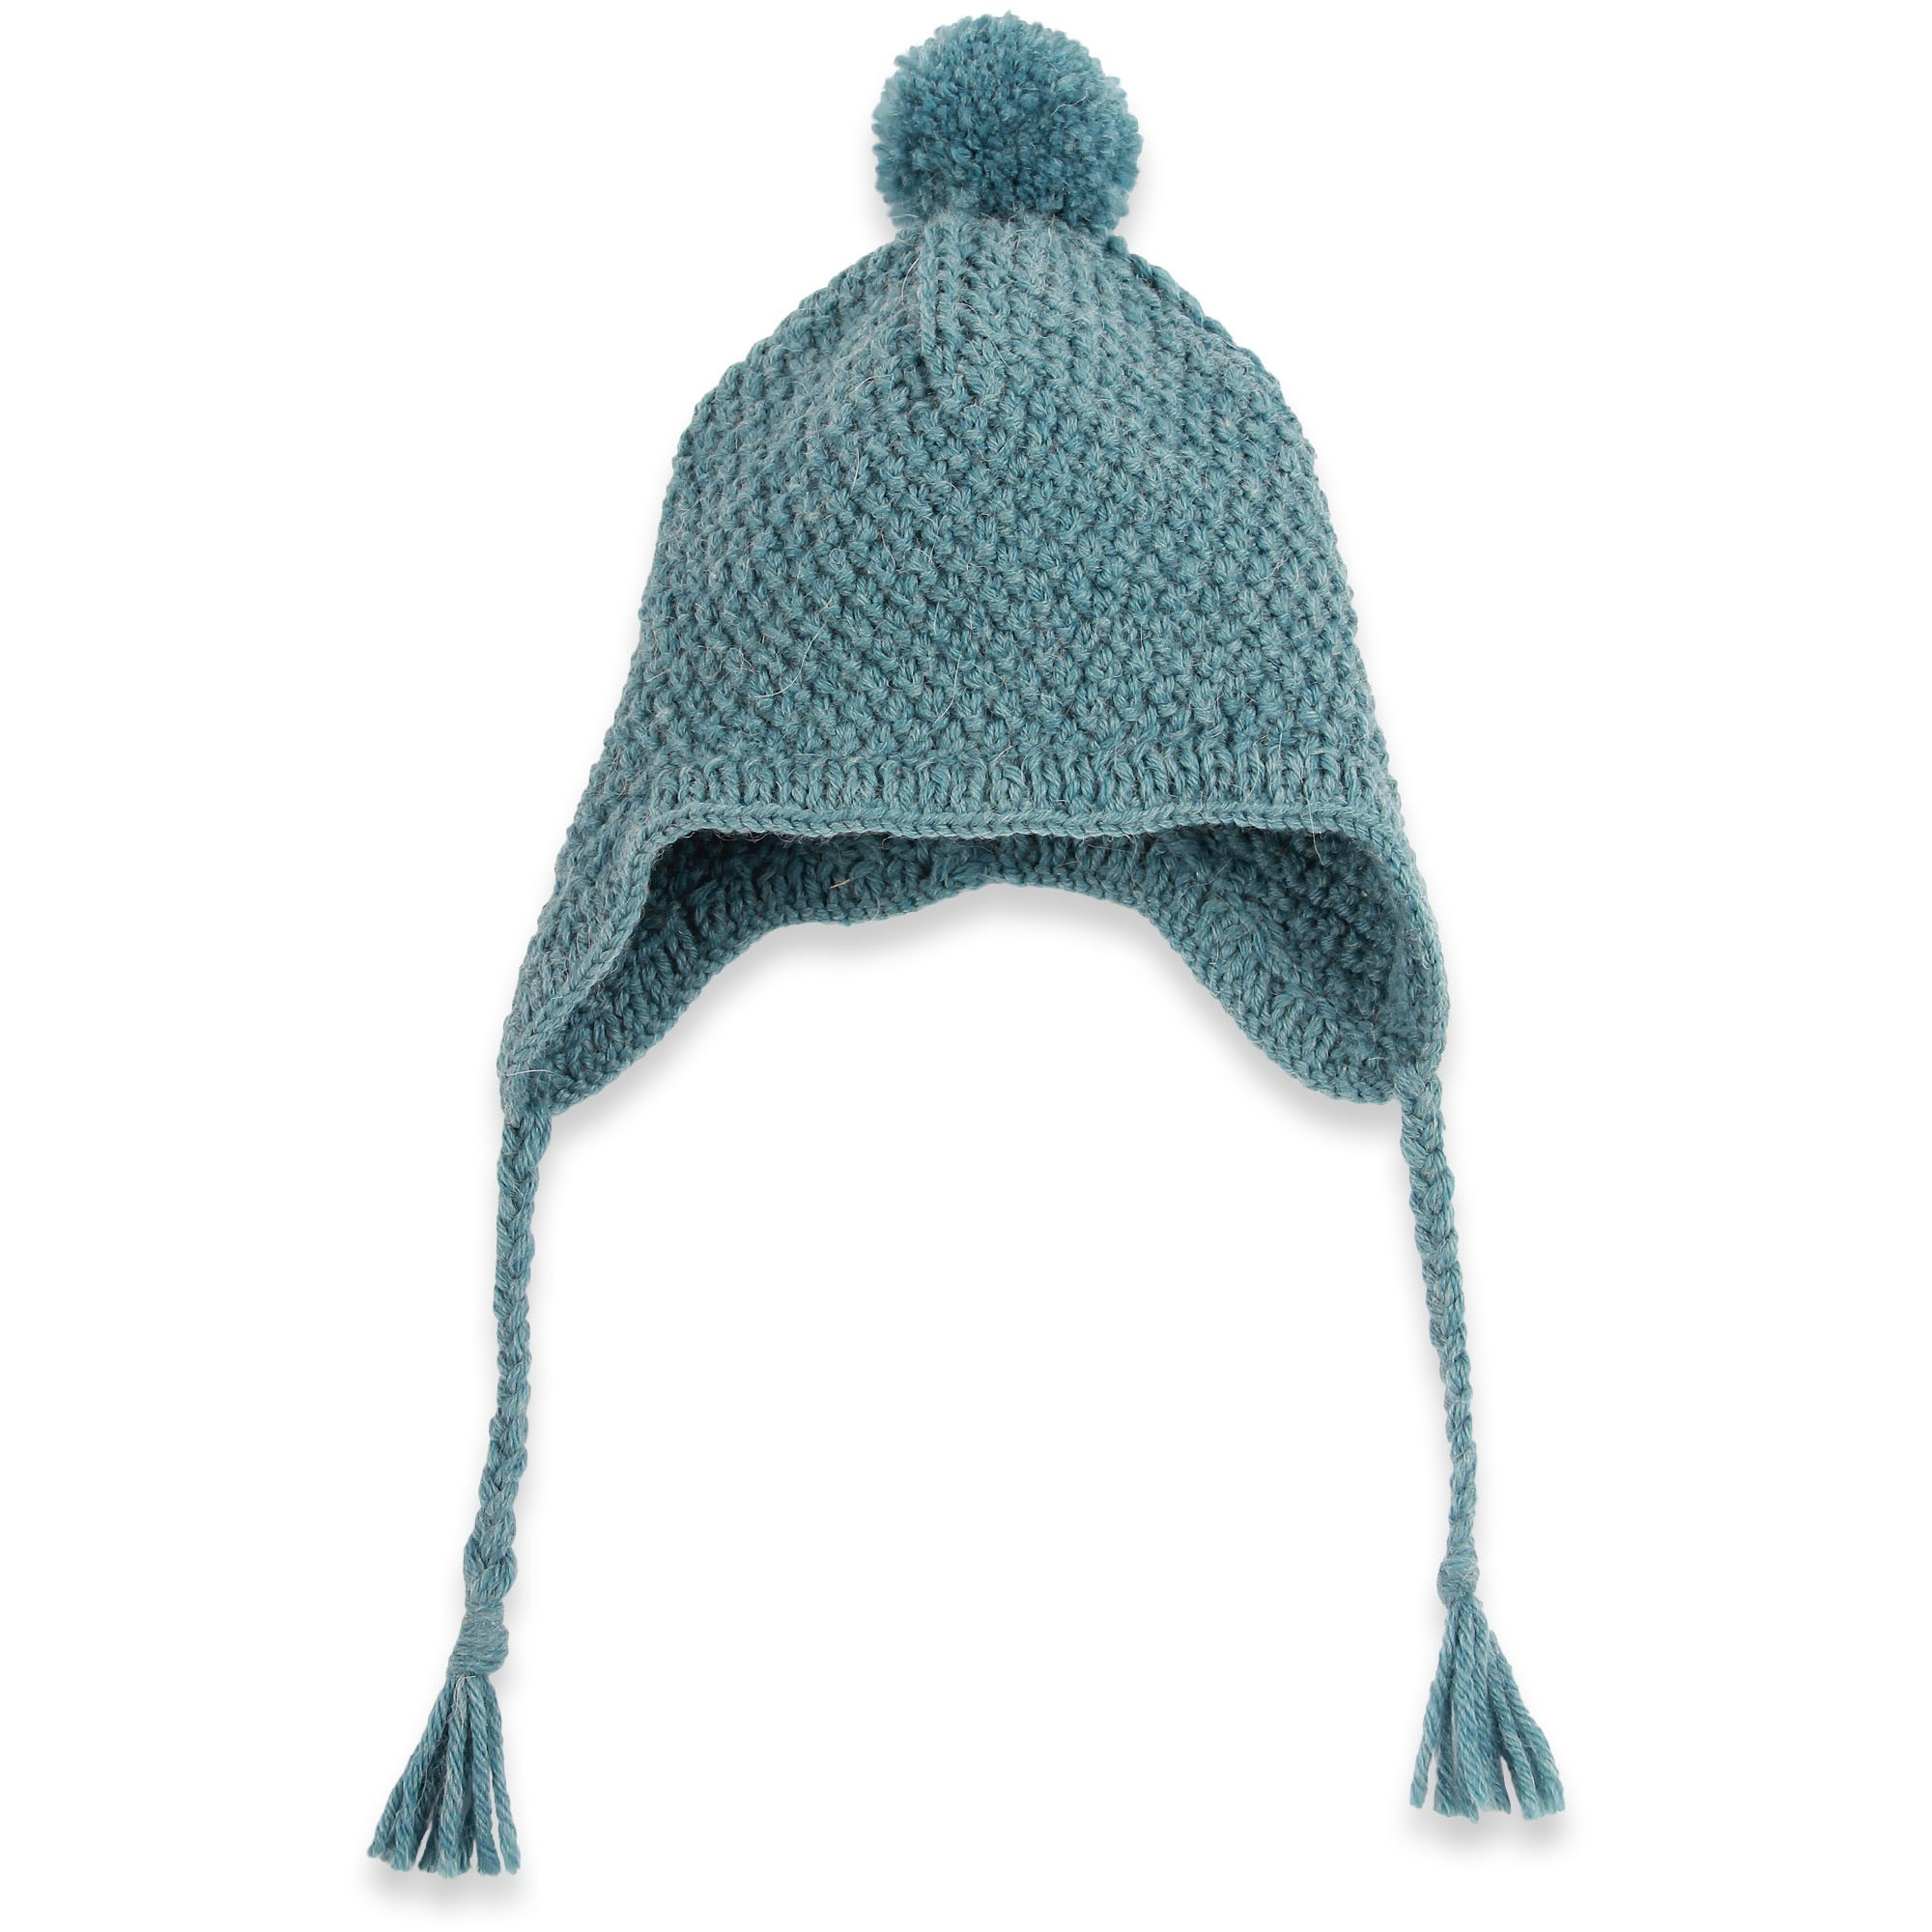 Knitted Hat Patterns For Alpaca Yarn : Kid cap knitted in moss stitch by our grannies wool & alpaca yarns